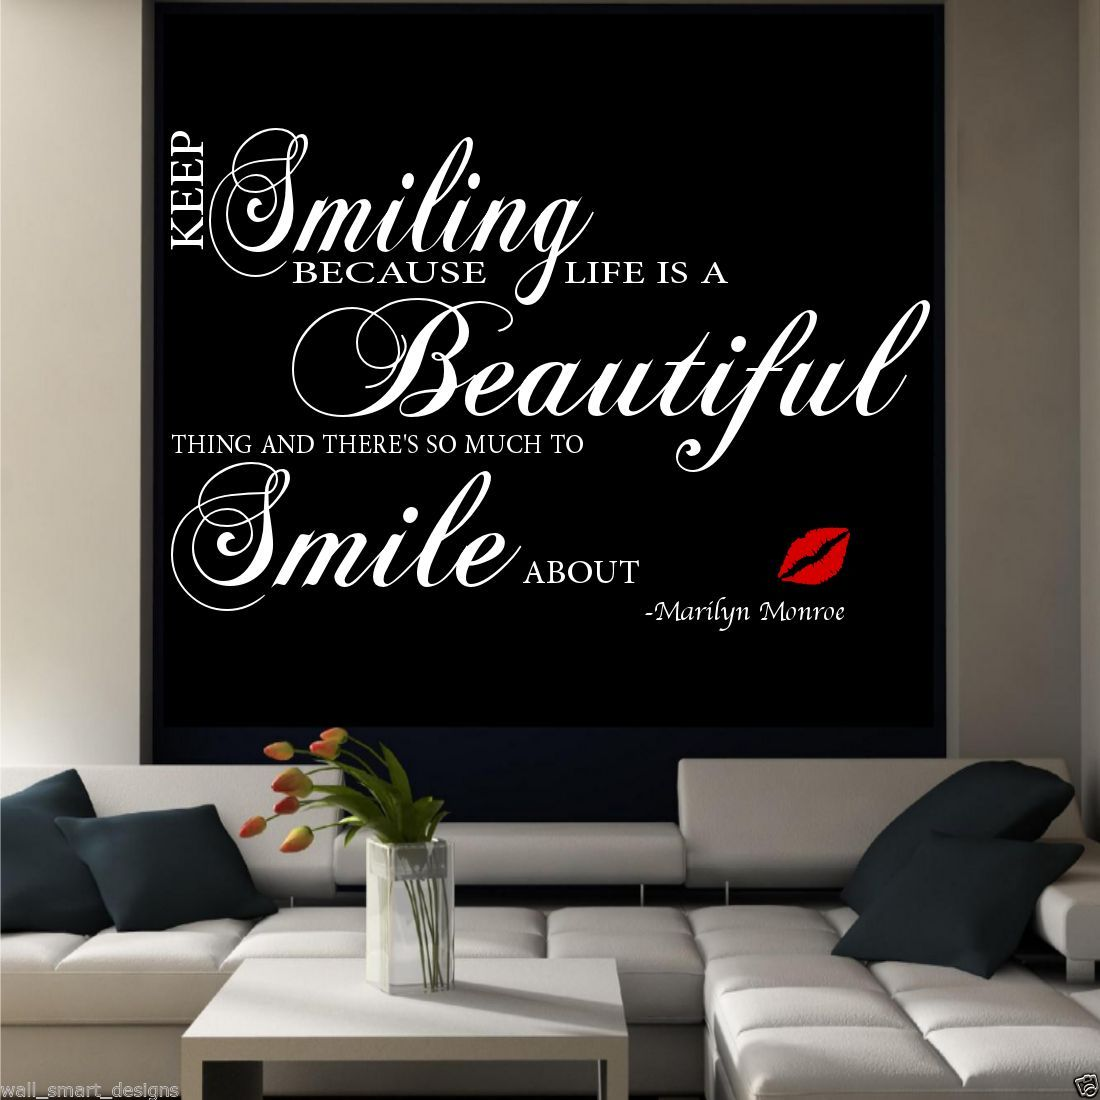 Marilyn Monroe Smile Room wall art quote sticker mural ...